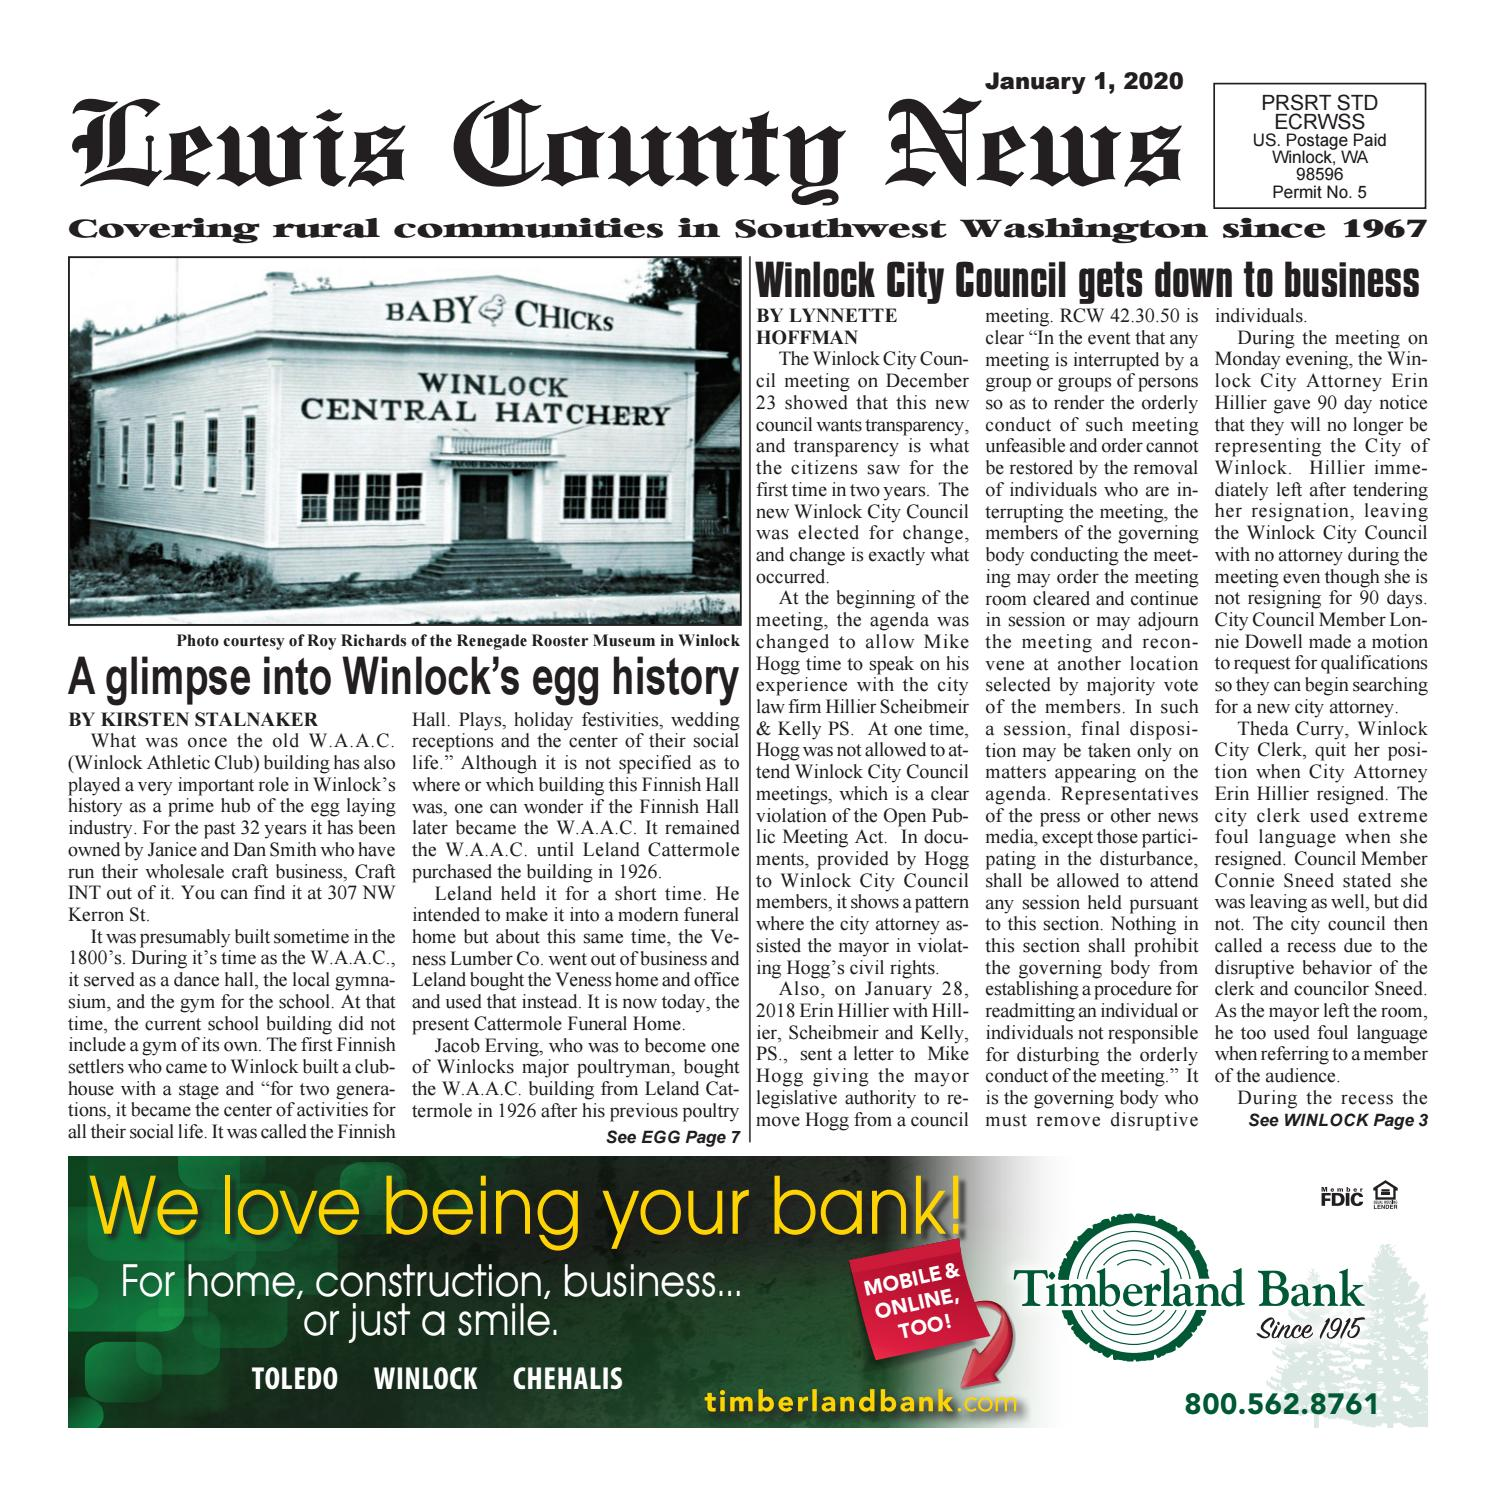 online buy wholesale large decorative baskets from china.htm january 1  2020 lewis county news by flannerypubs issuu  january 1  2020 lewis county news by